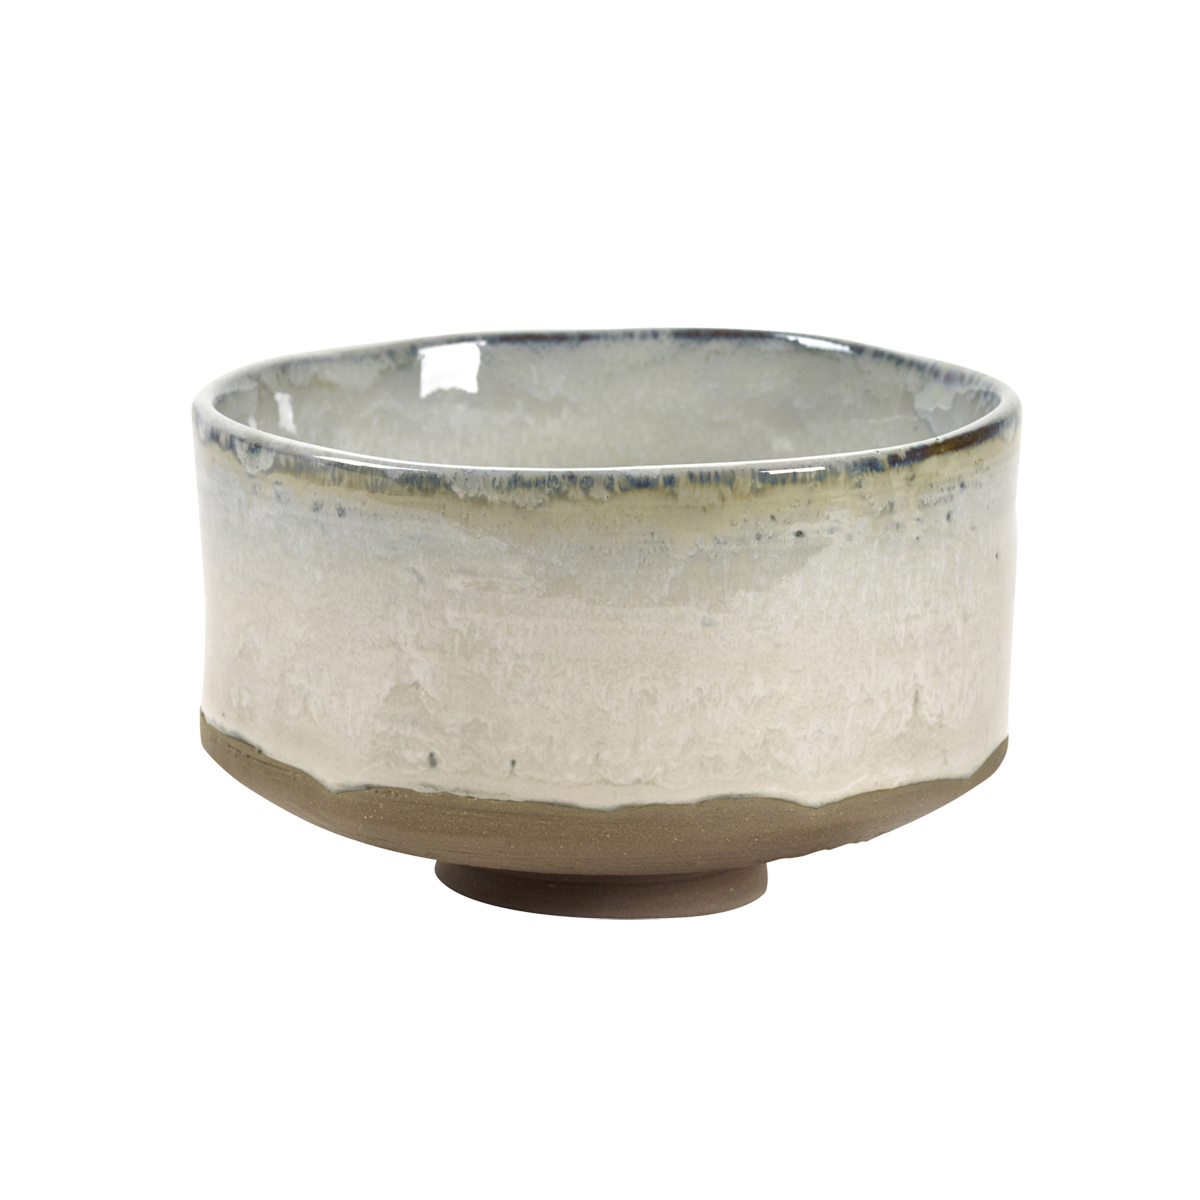 Bowl Merci n°1 medium wit 12,5cm